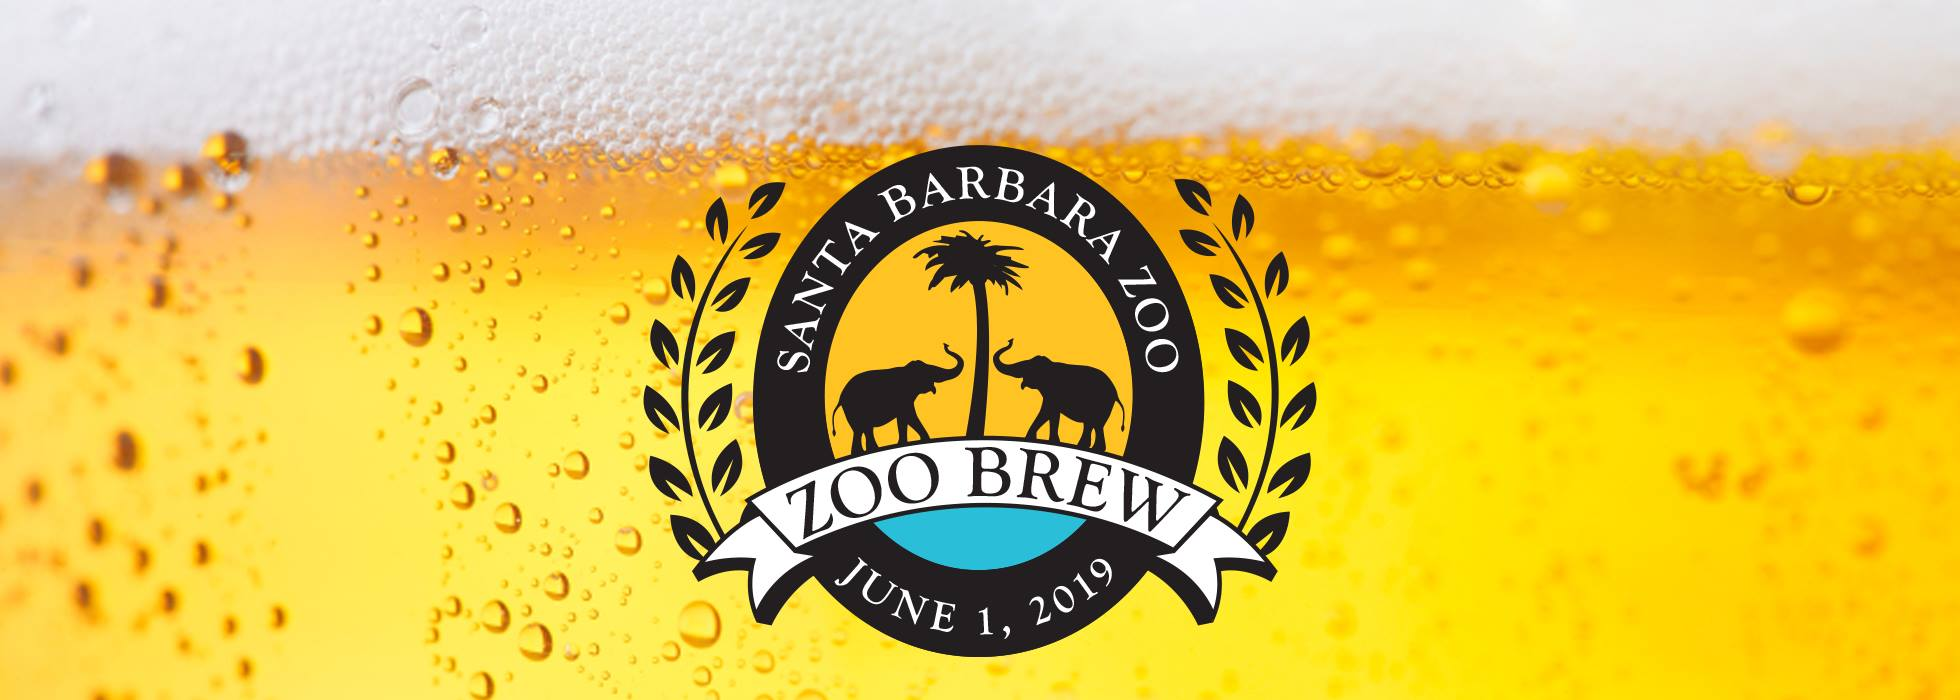 Santa Barbara Zoo Brew 2019